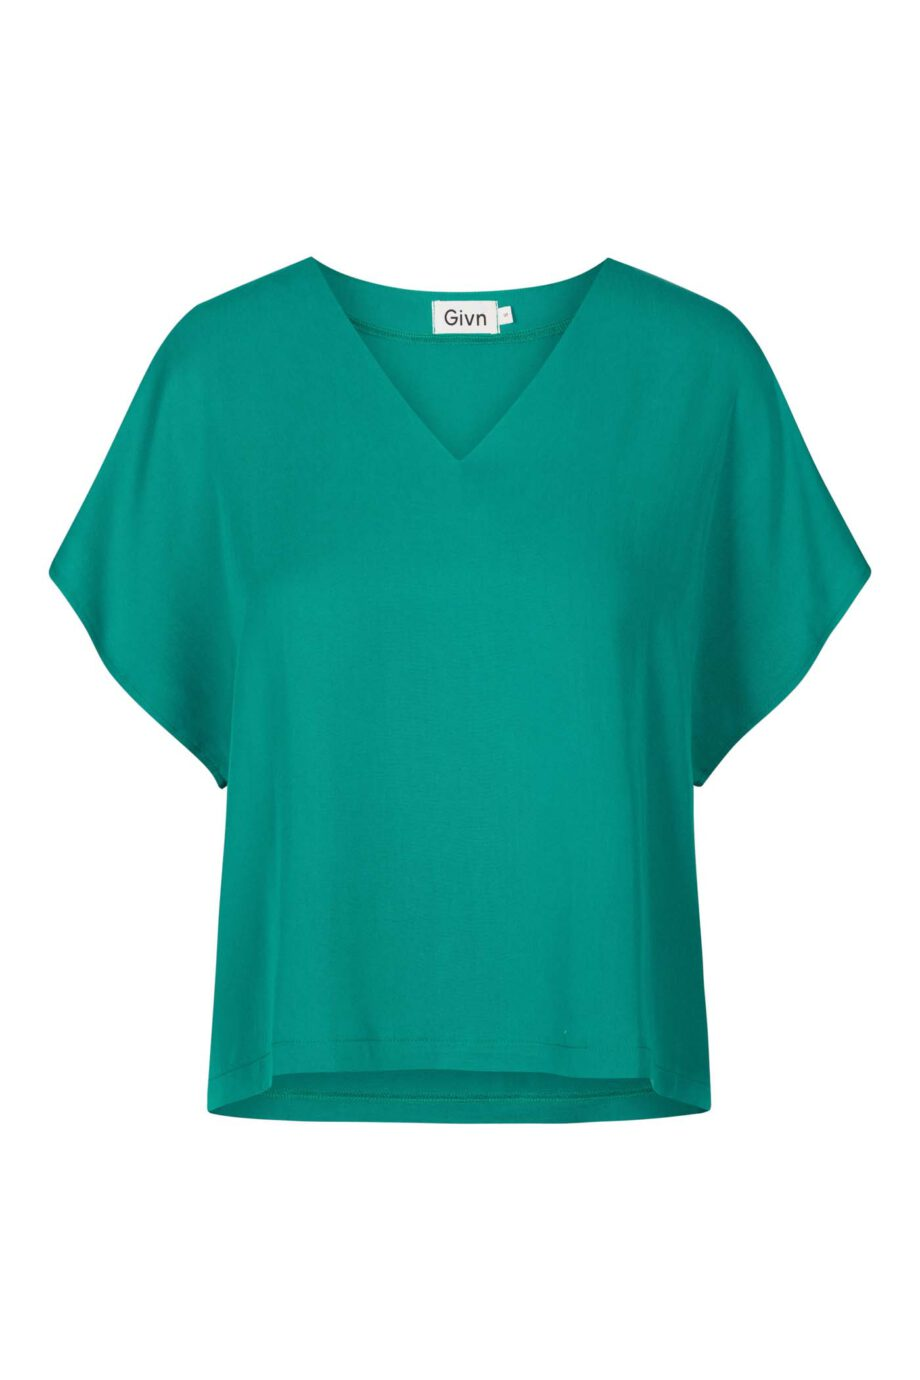 GIVN Ruby Sea green_pack